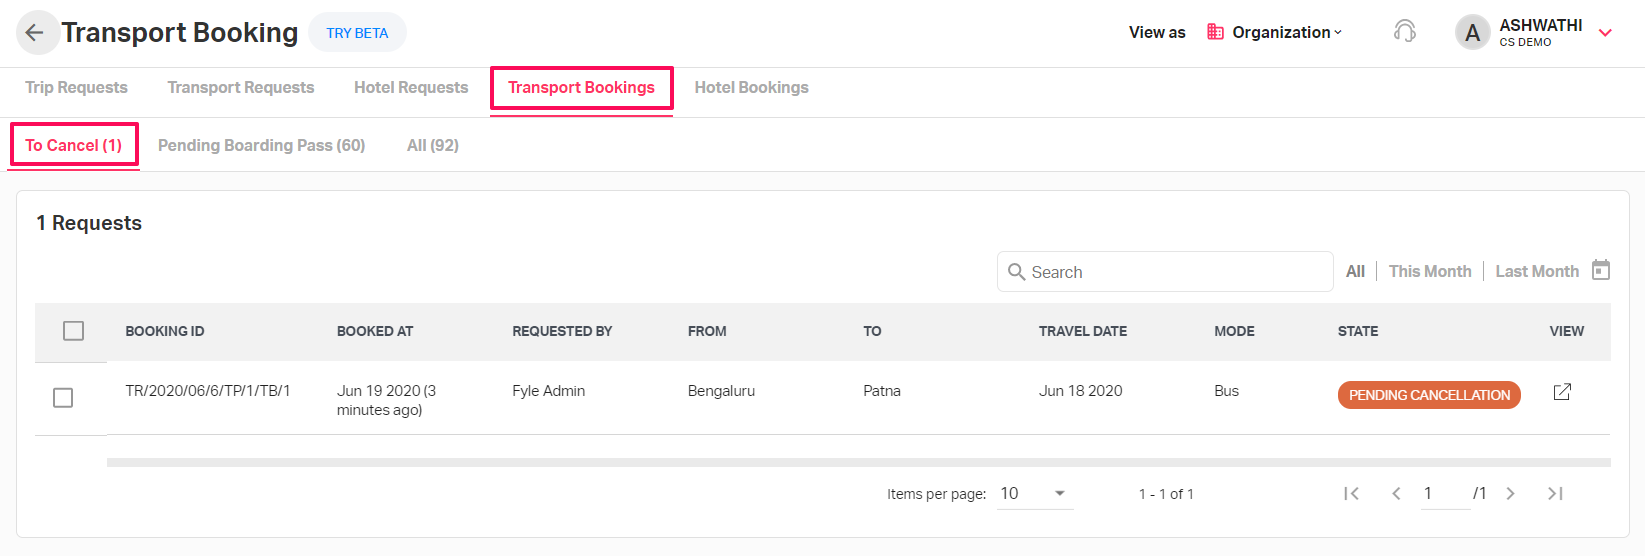 Canceling a booked transport request